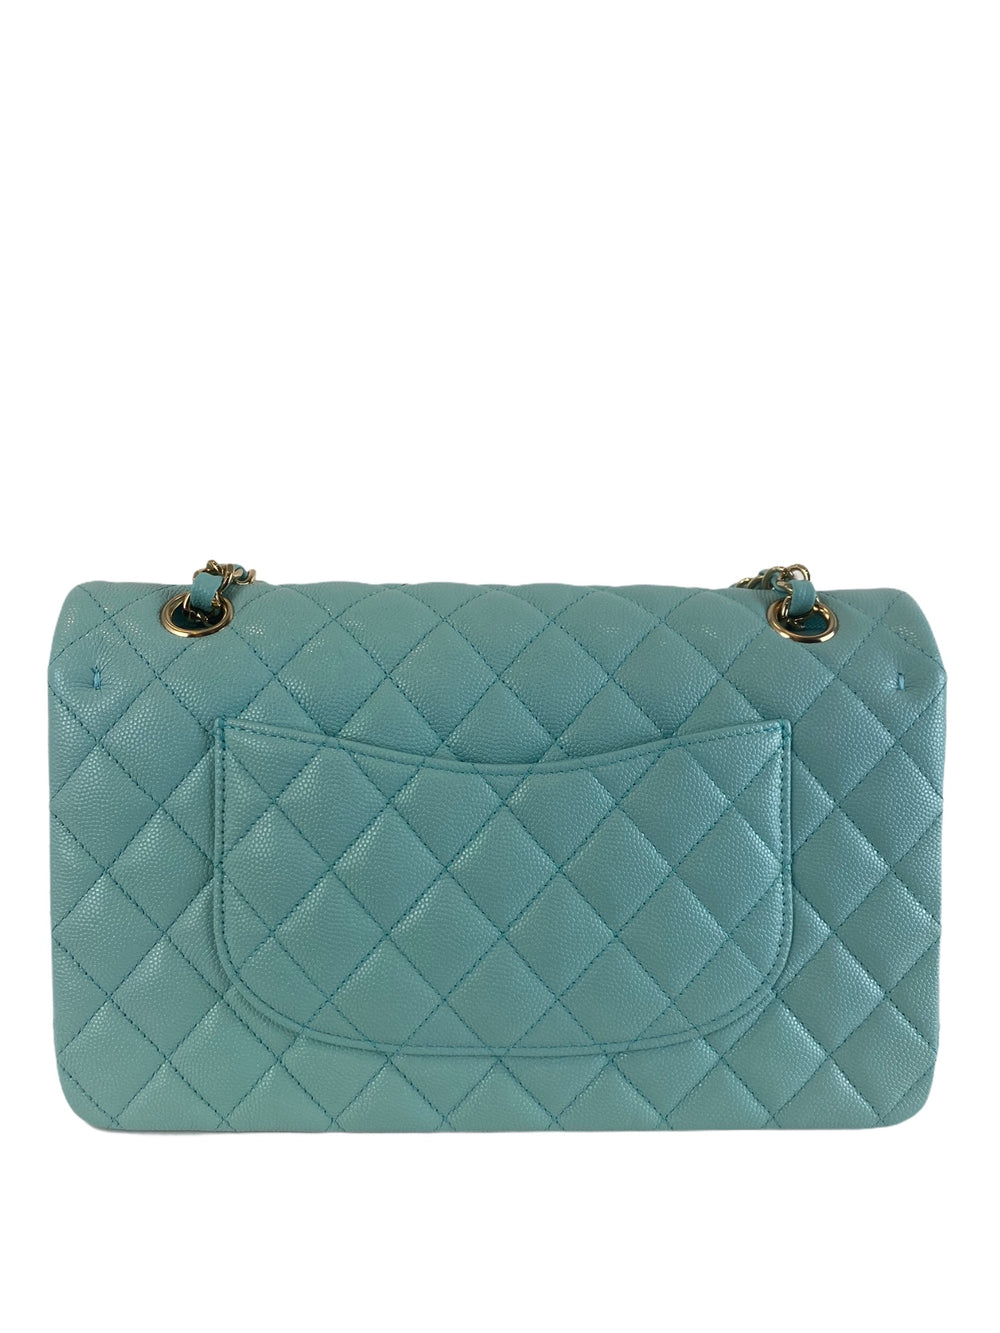 Chanel Turquoise Caviar Leather Medium Double Flap - As Seen on Instagram 21/10/2020